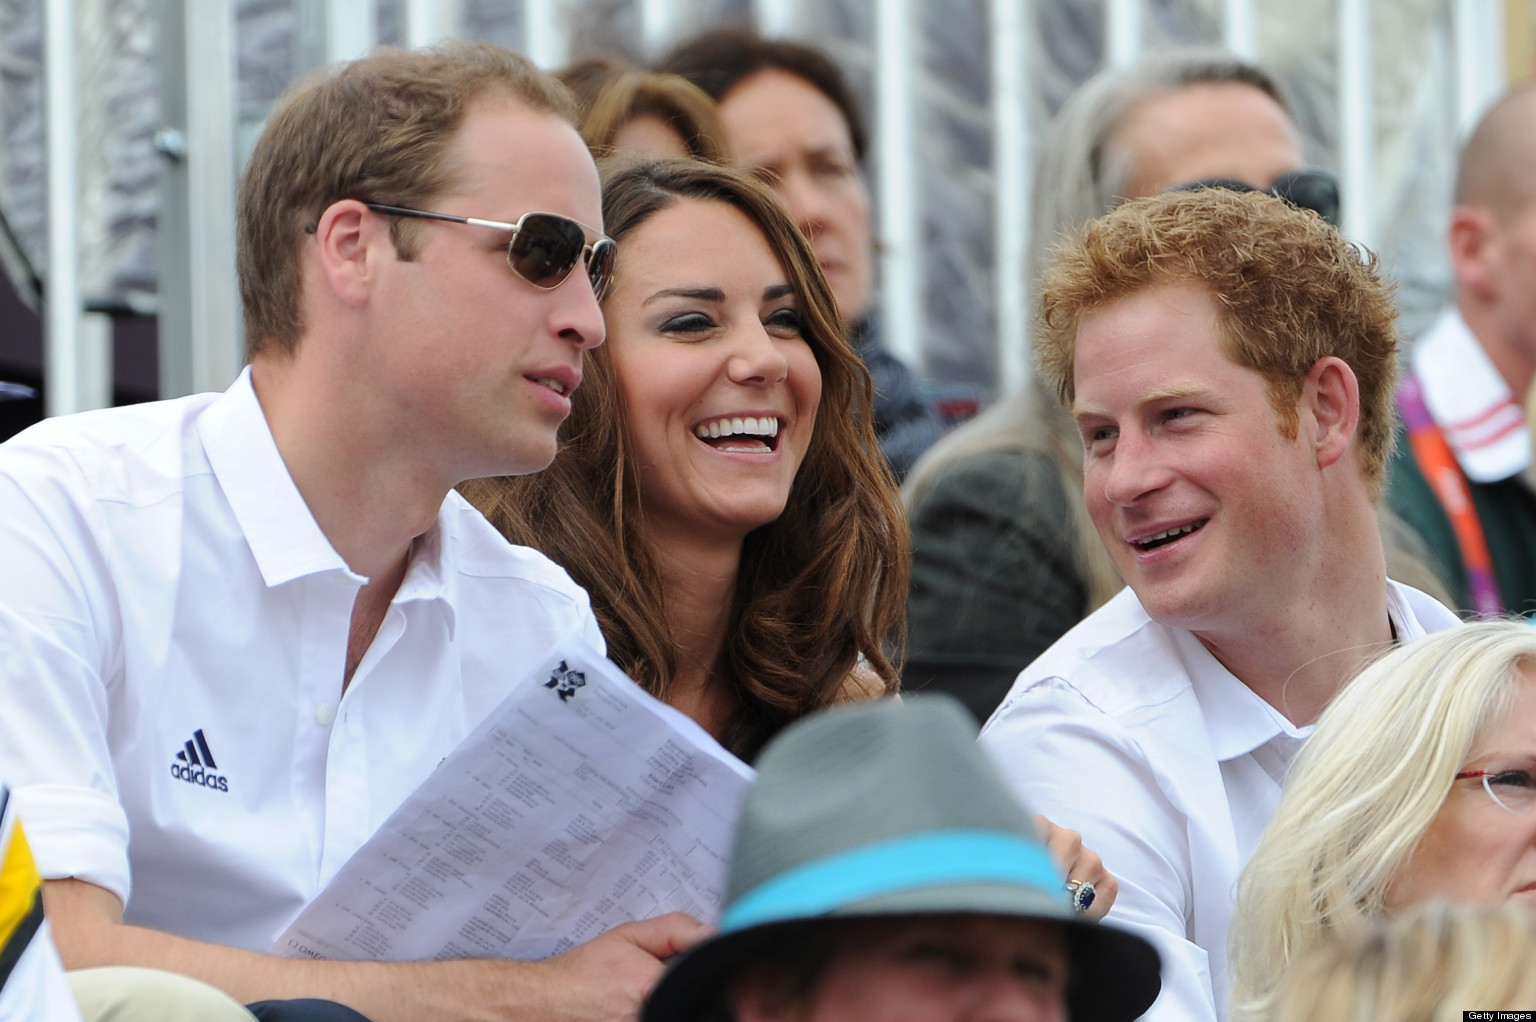 Kate middleton duchess of cambridge trademarks name for royal charity fashion goods she shares with william harry huffpost uk